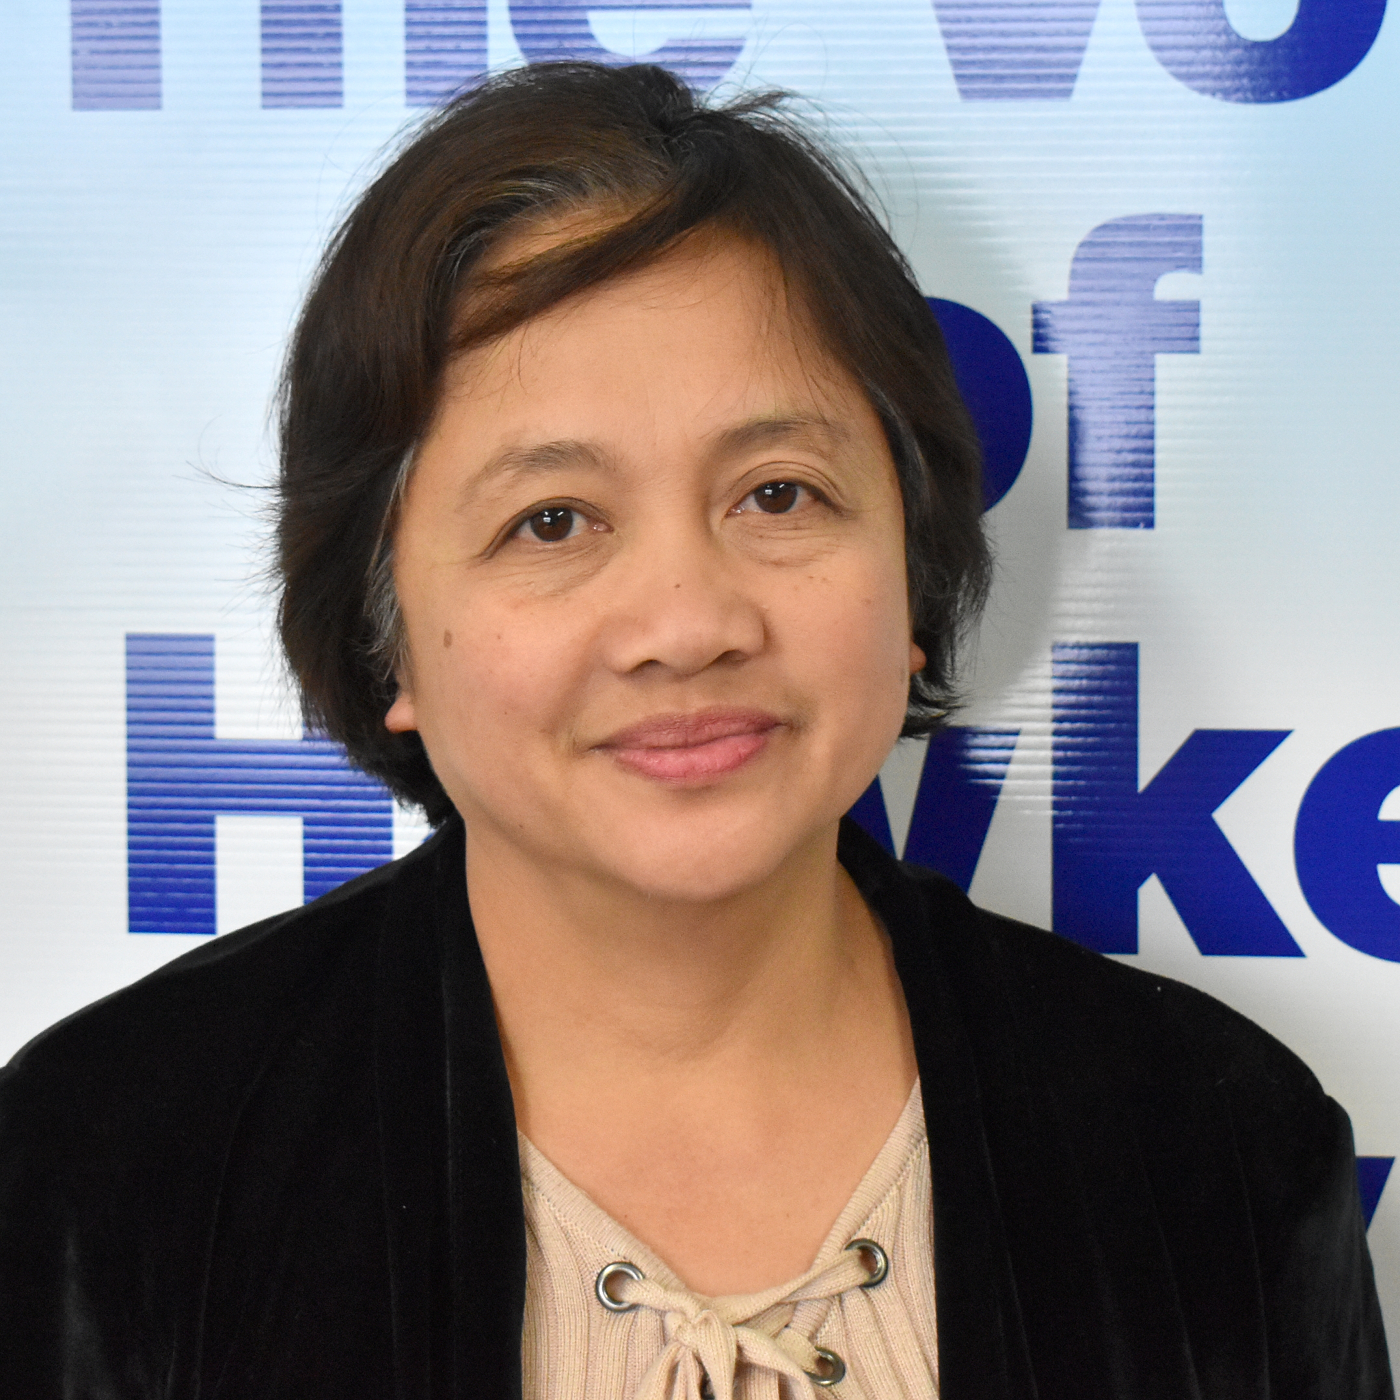 Philippine Radio-22-07-2019 Leah talks about the independence and teaches us some phrases